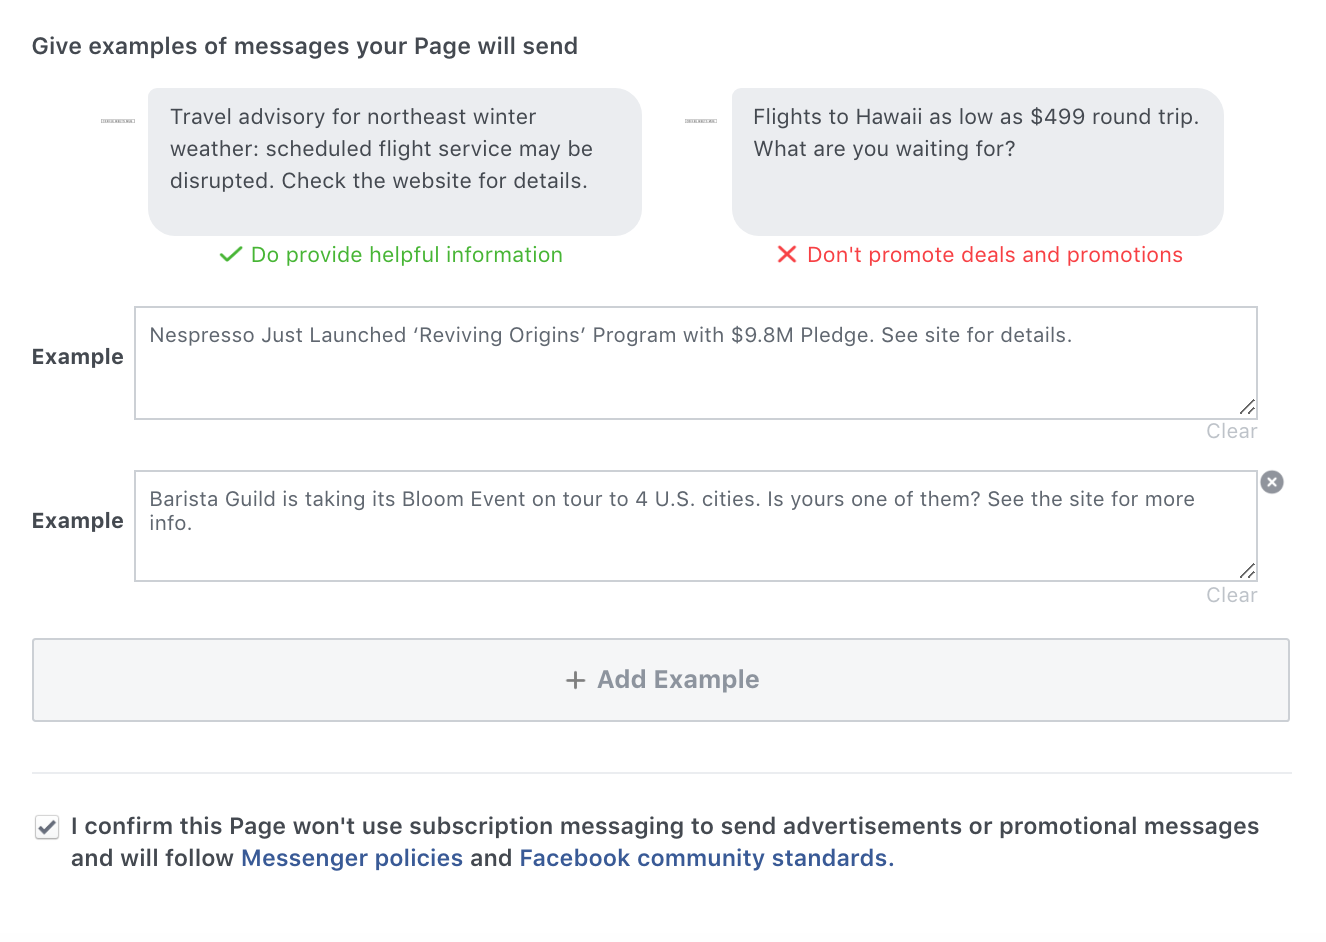 Examples of messages your Page will send for Facebook Subscription Messaging approval.